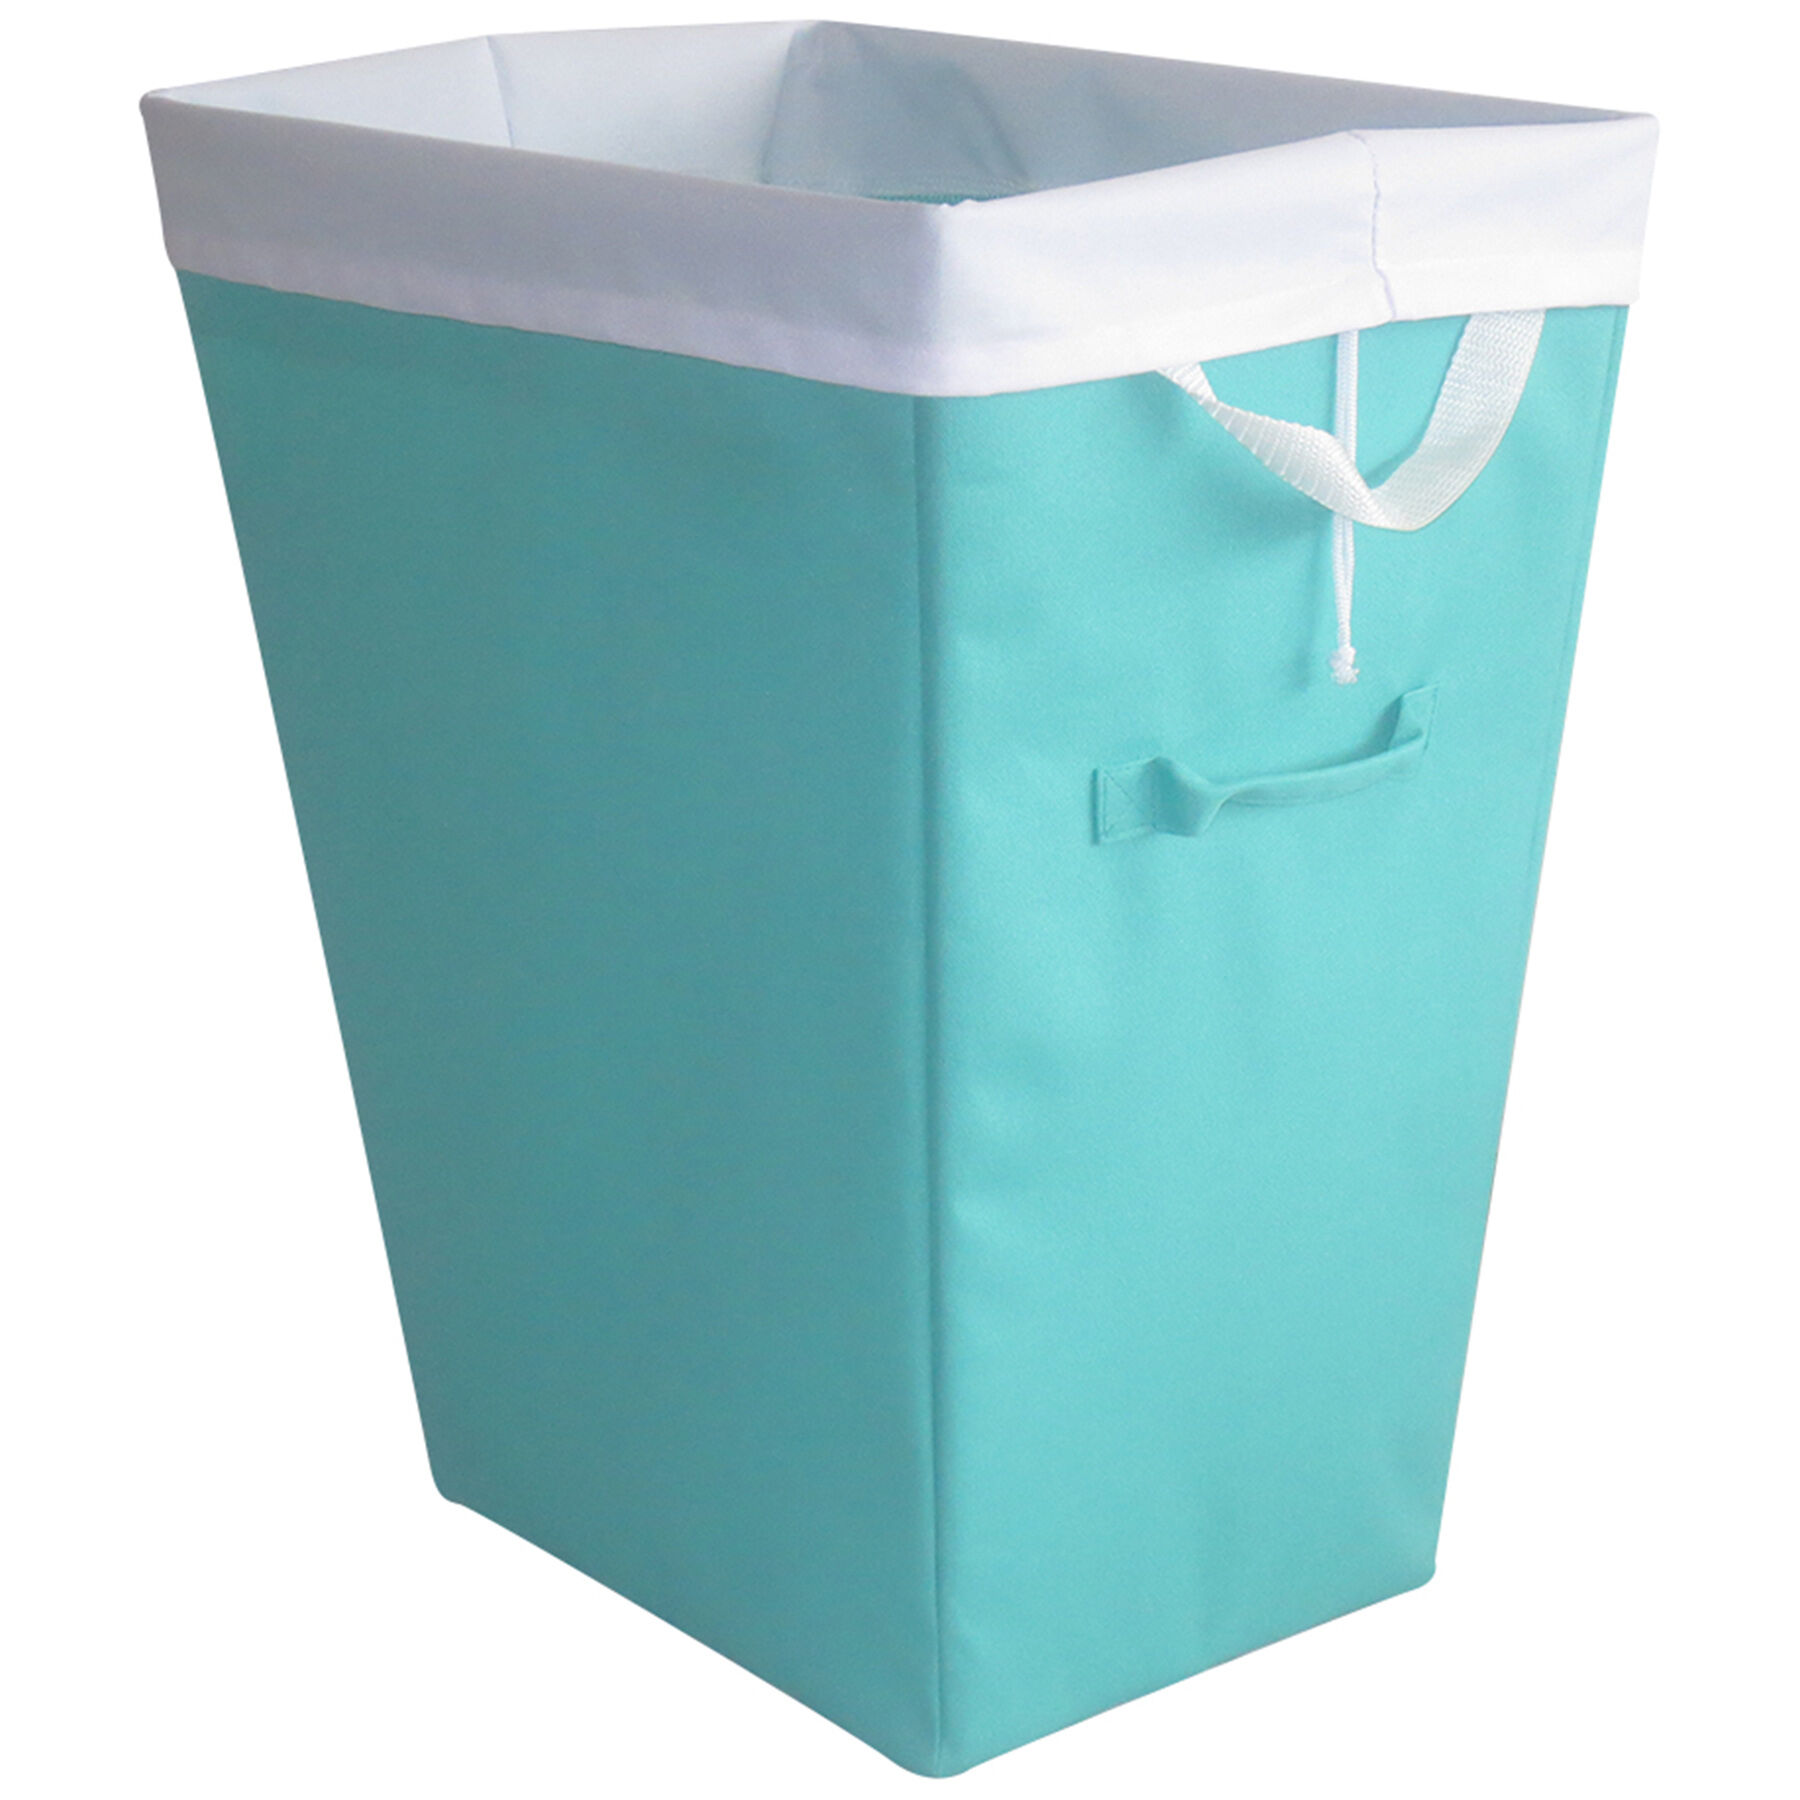 Laundry Trash Cans Teal Laundry Hamper